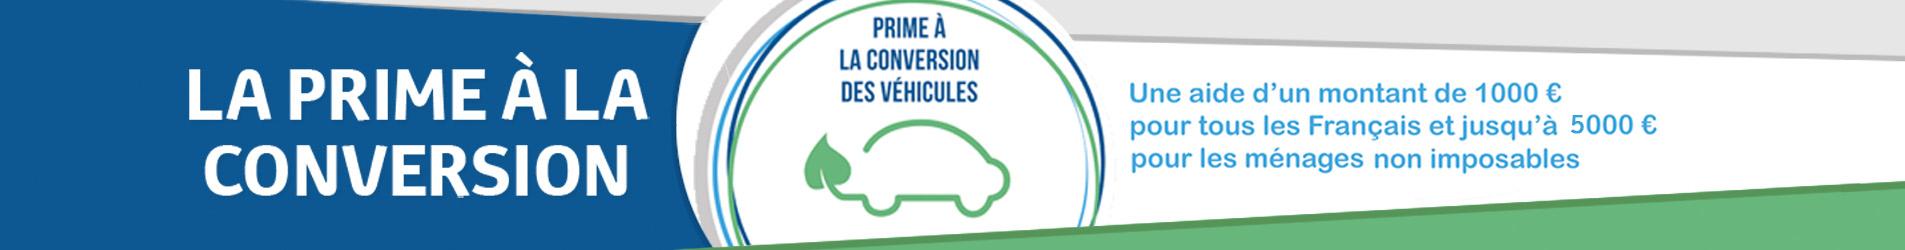 garage renault salon de provence Prime conversion 2019